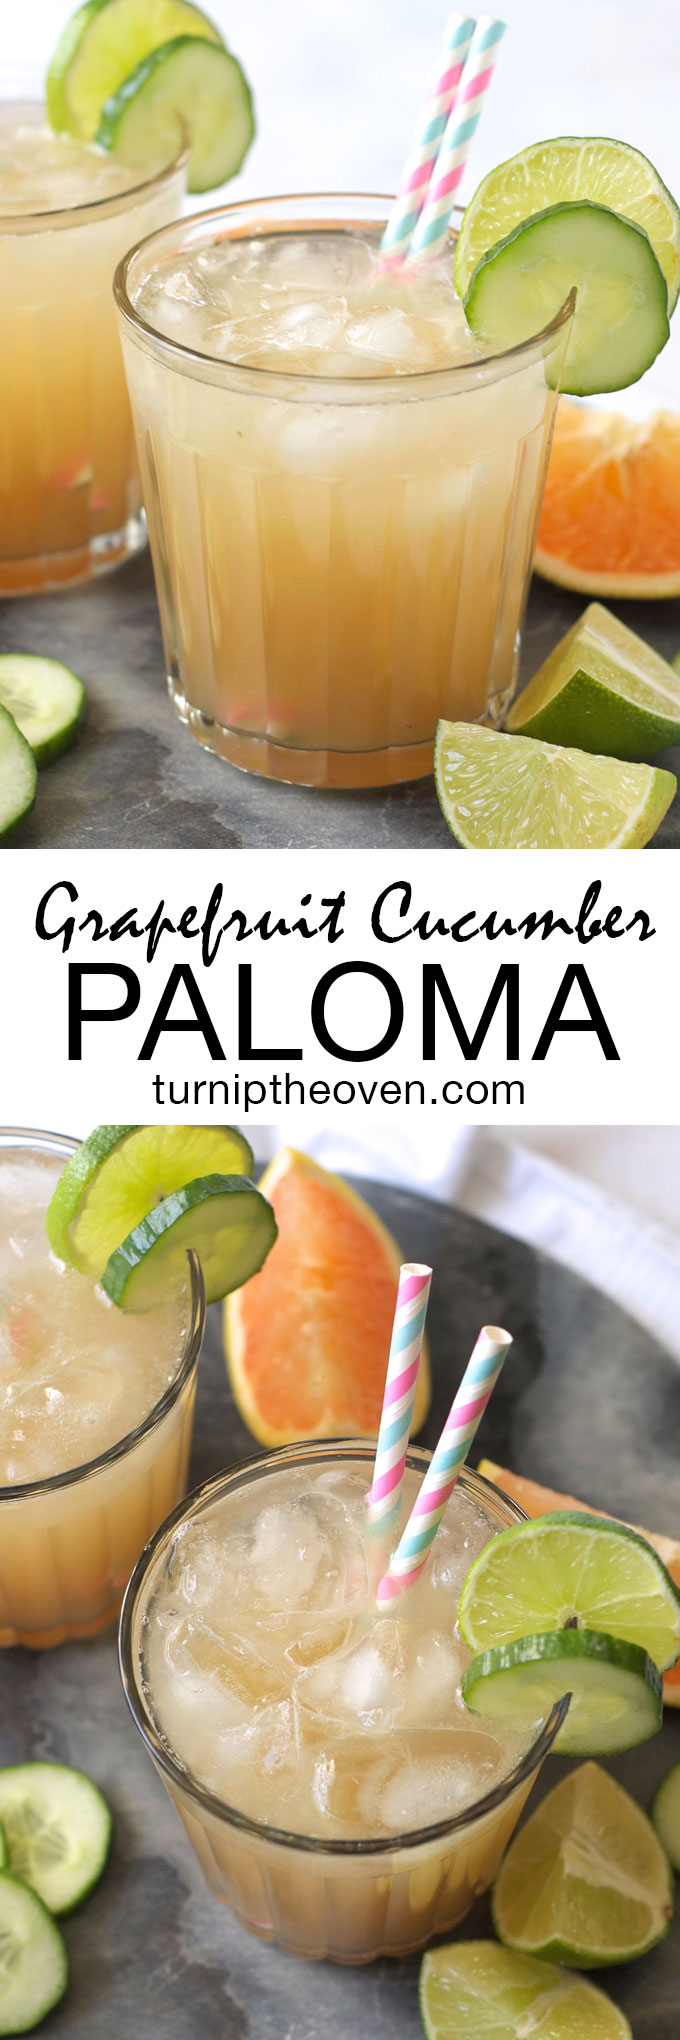 The paloma is the margarita's even easier cousin! Tequila, grapefruit juice, cucumber, lime, and club soda are combined in this refreshingly fruit but not-too-sweet drink.